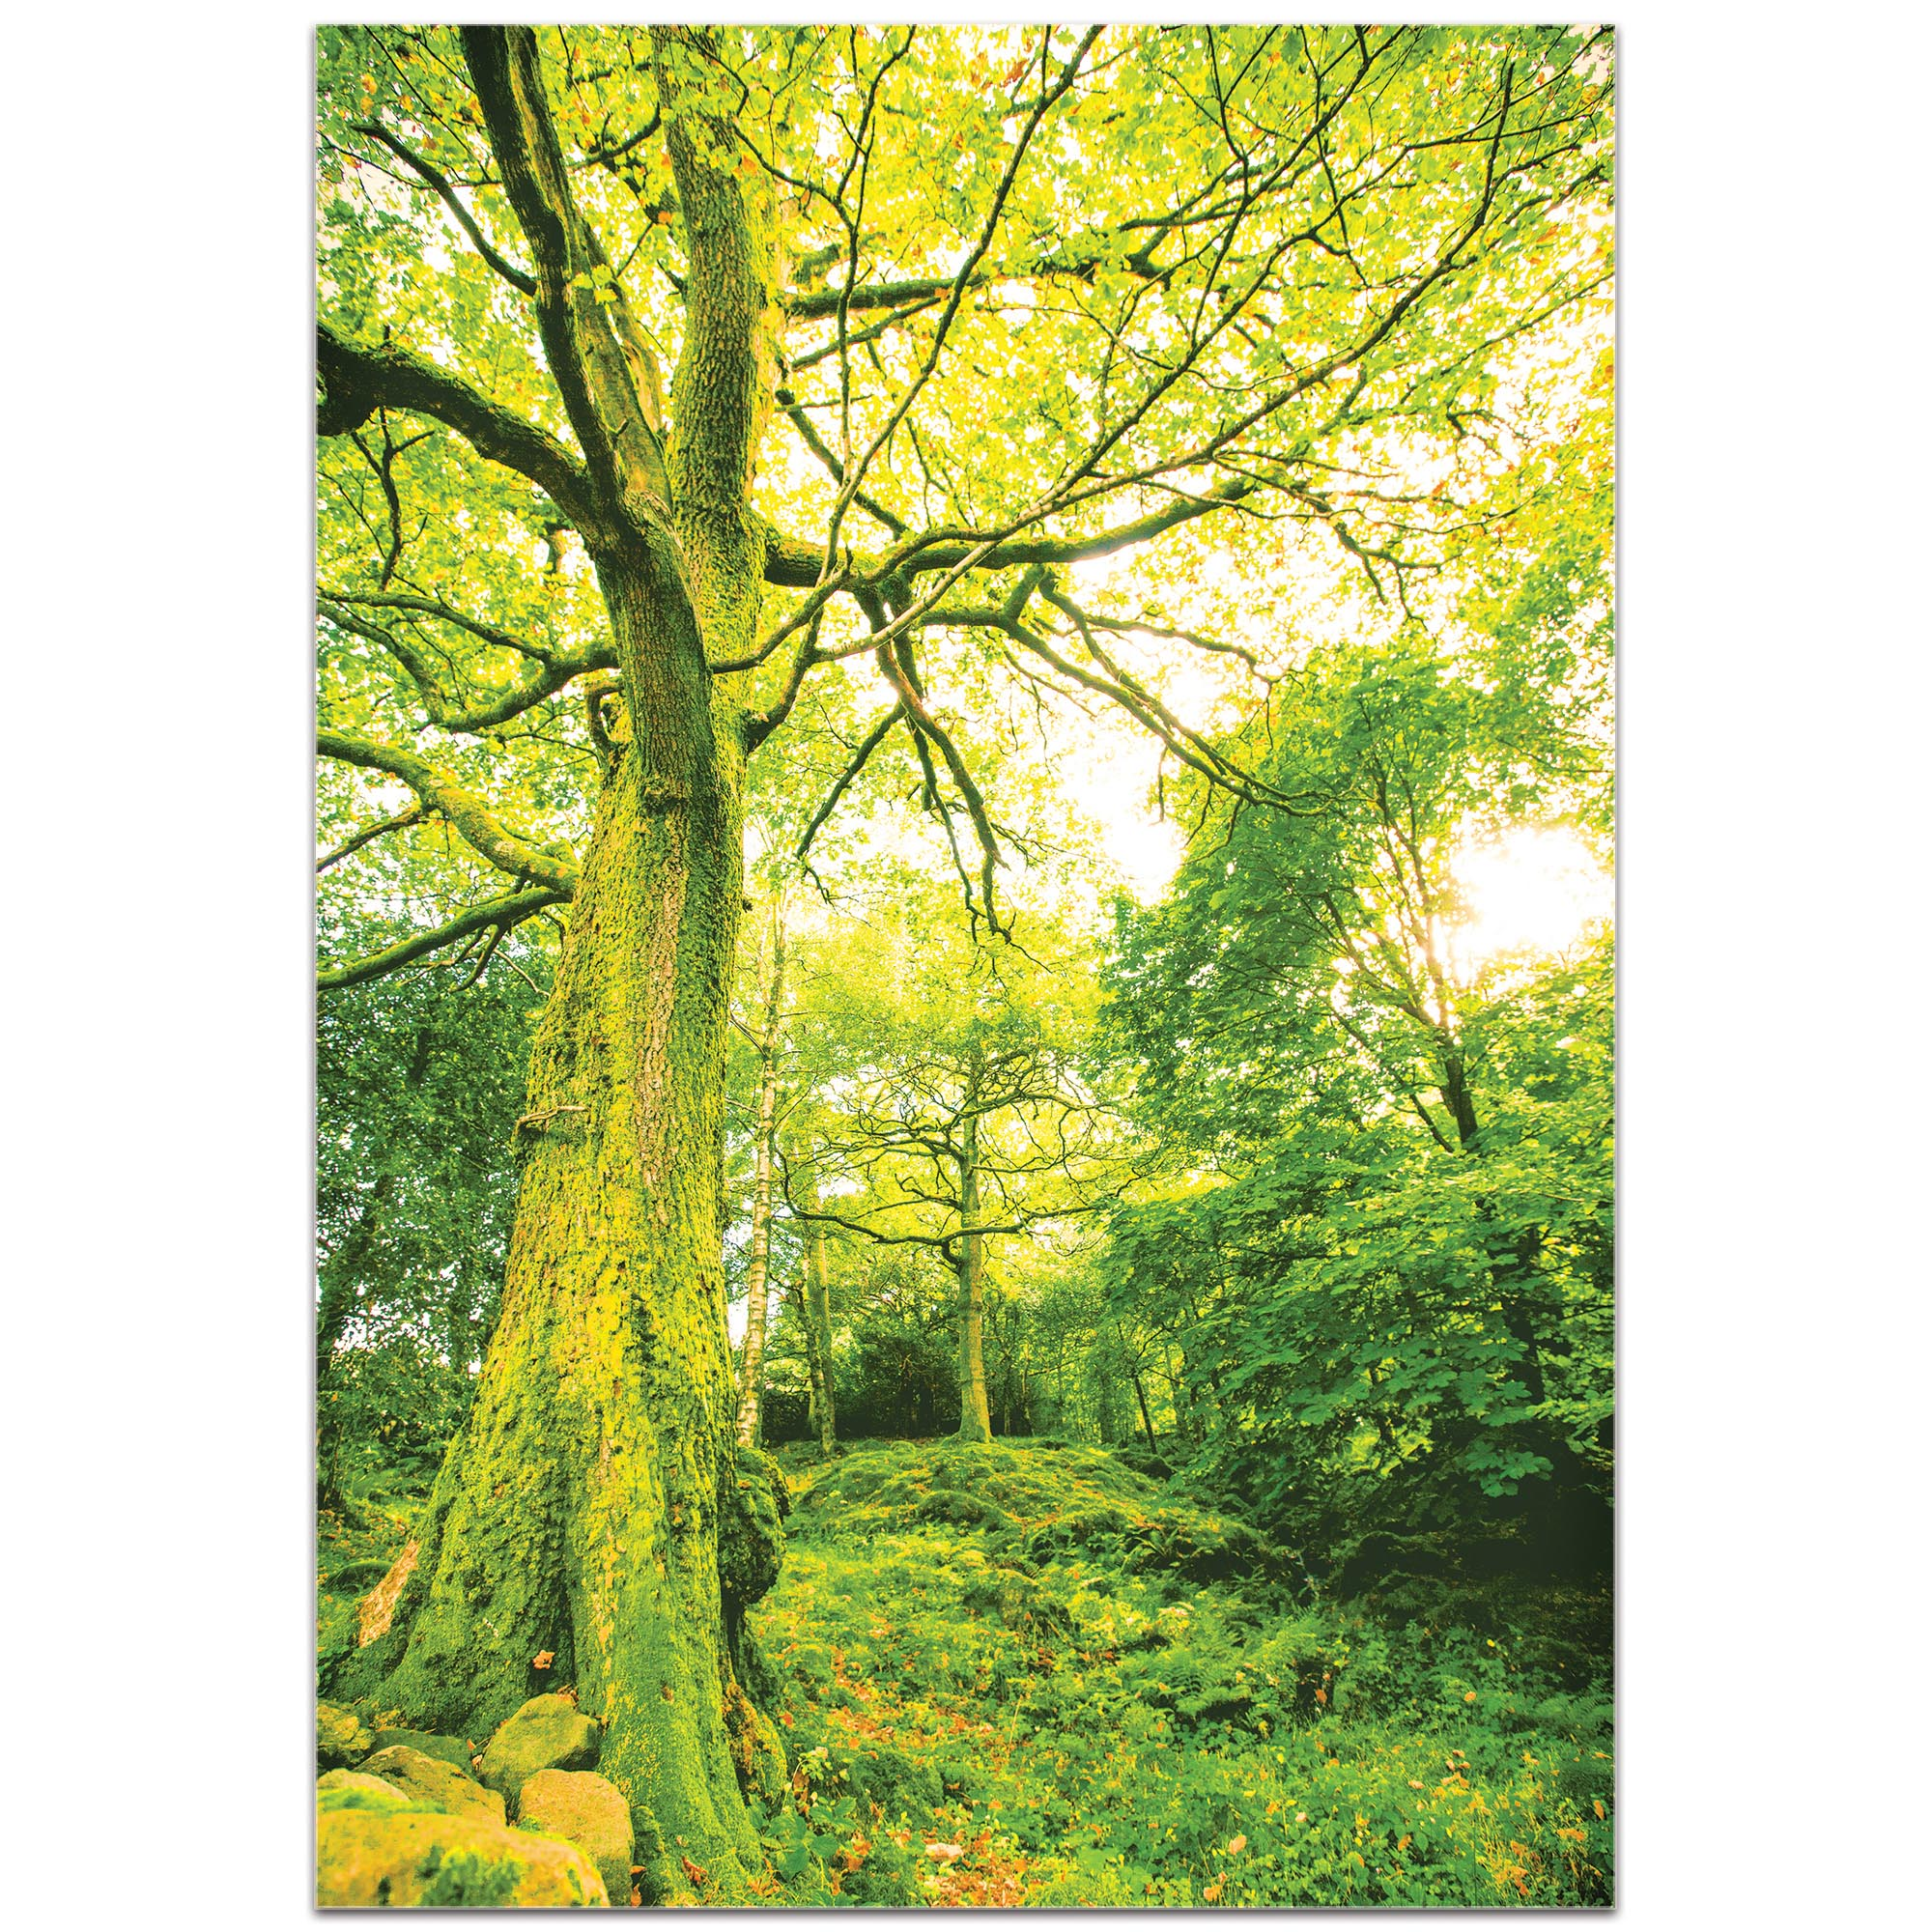 Landscape Photography 'Mossy Grove' - Forest Scene Art on Metal or Plexiglass - Image 2